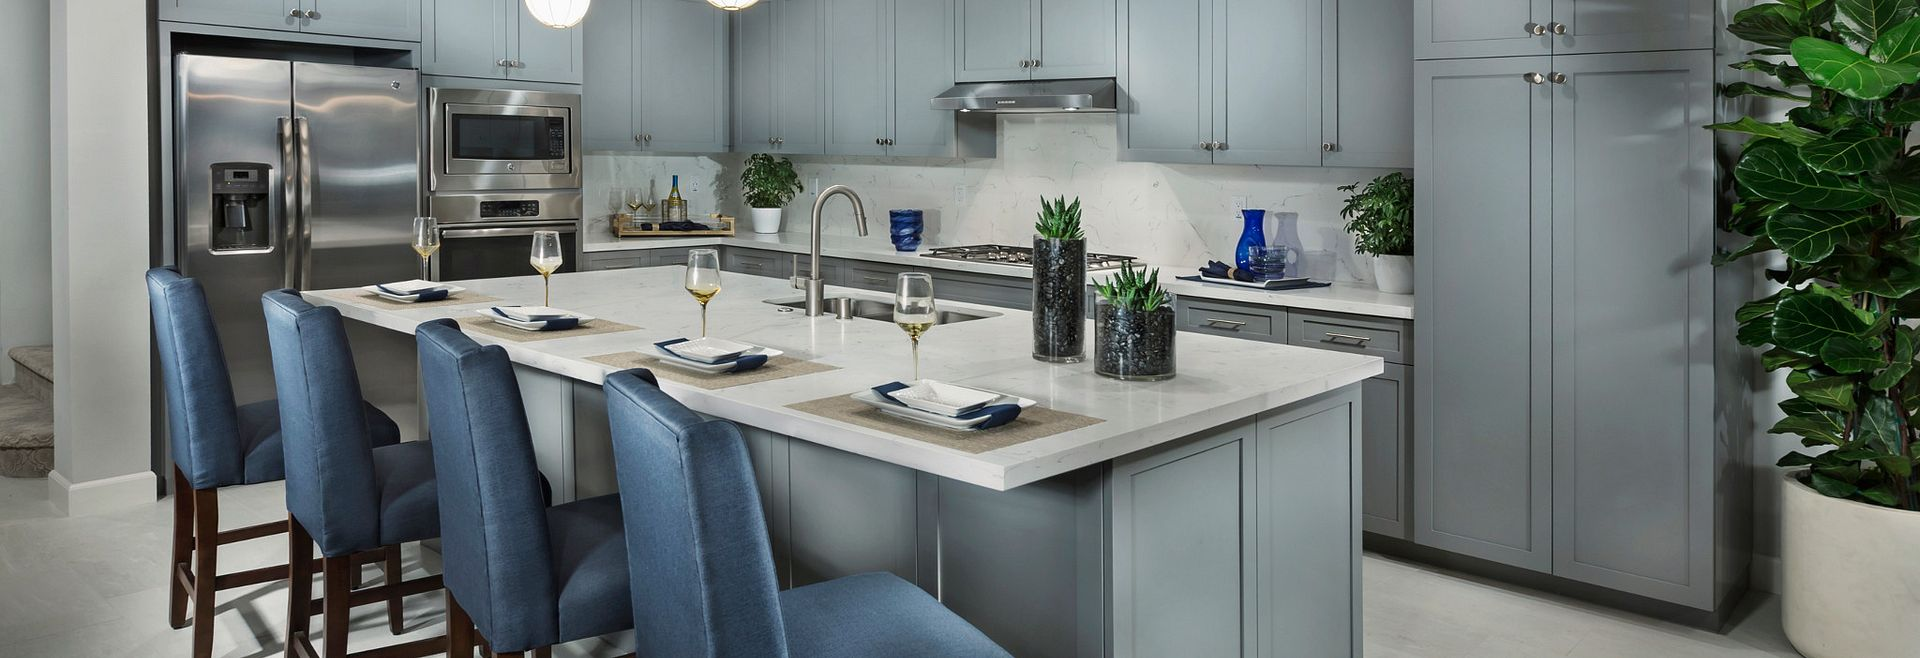 Plan 1 kitchen with center island, counter chairs, pendant lights, cabinets, and stainless steel appliances